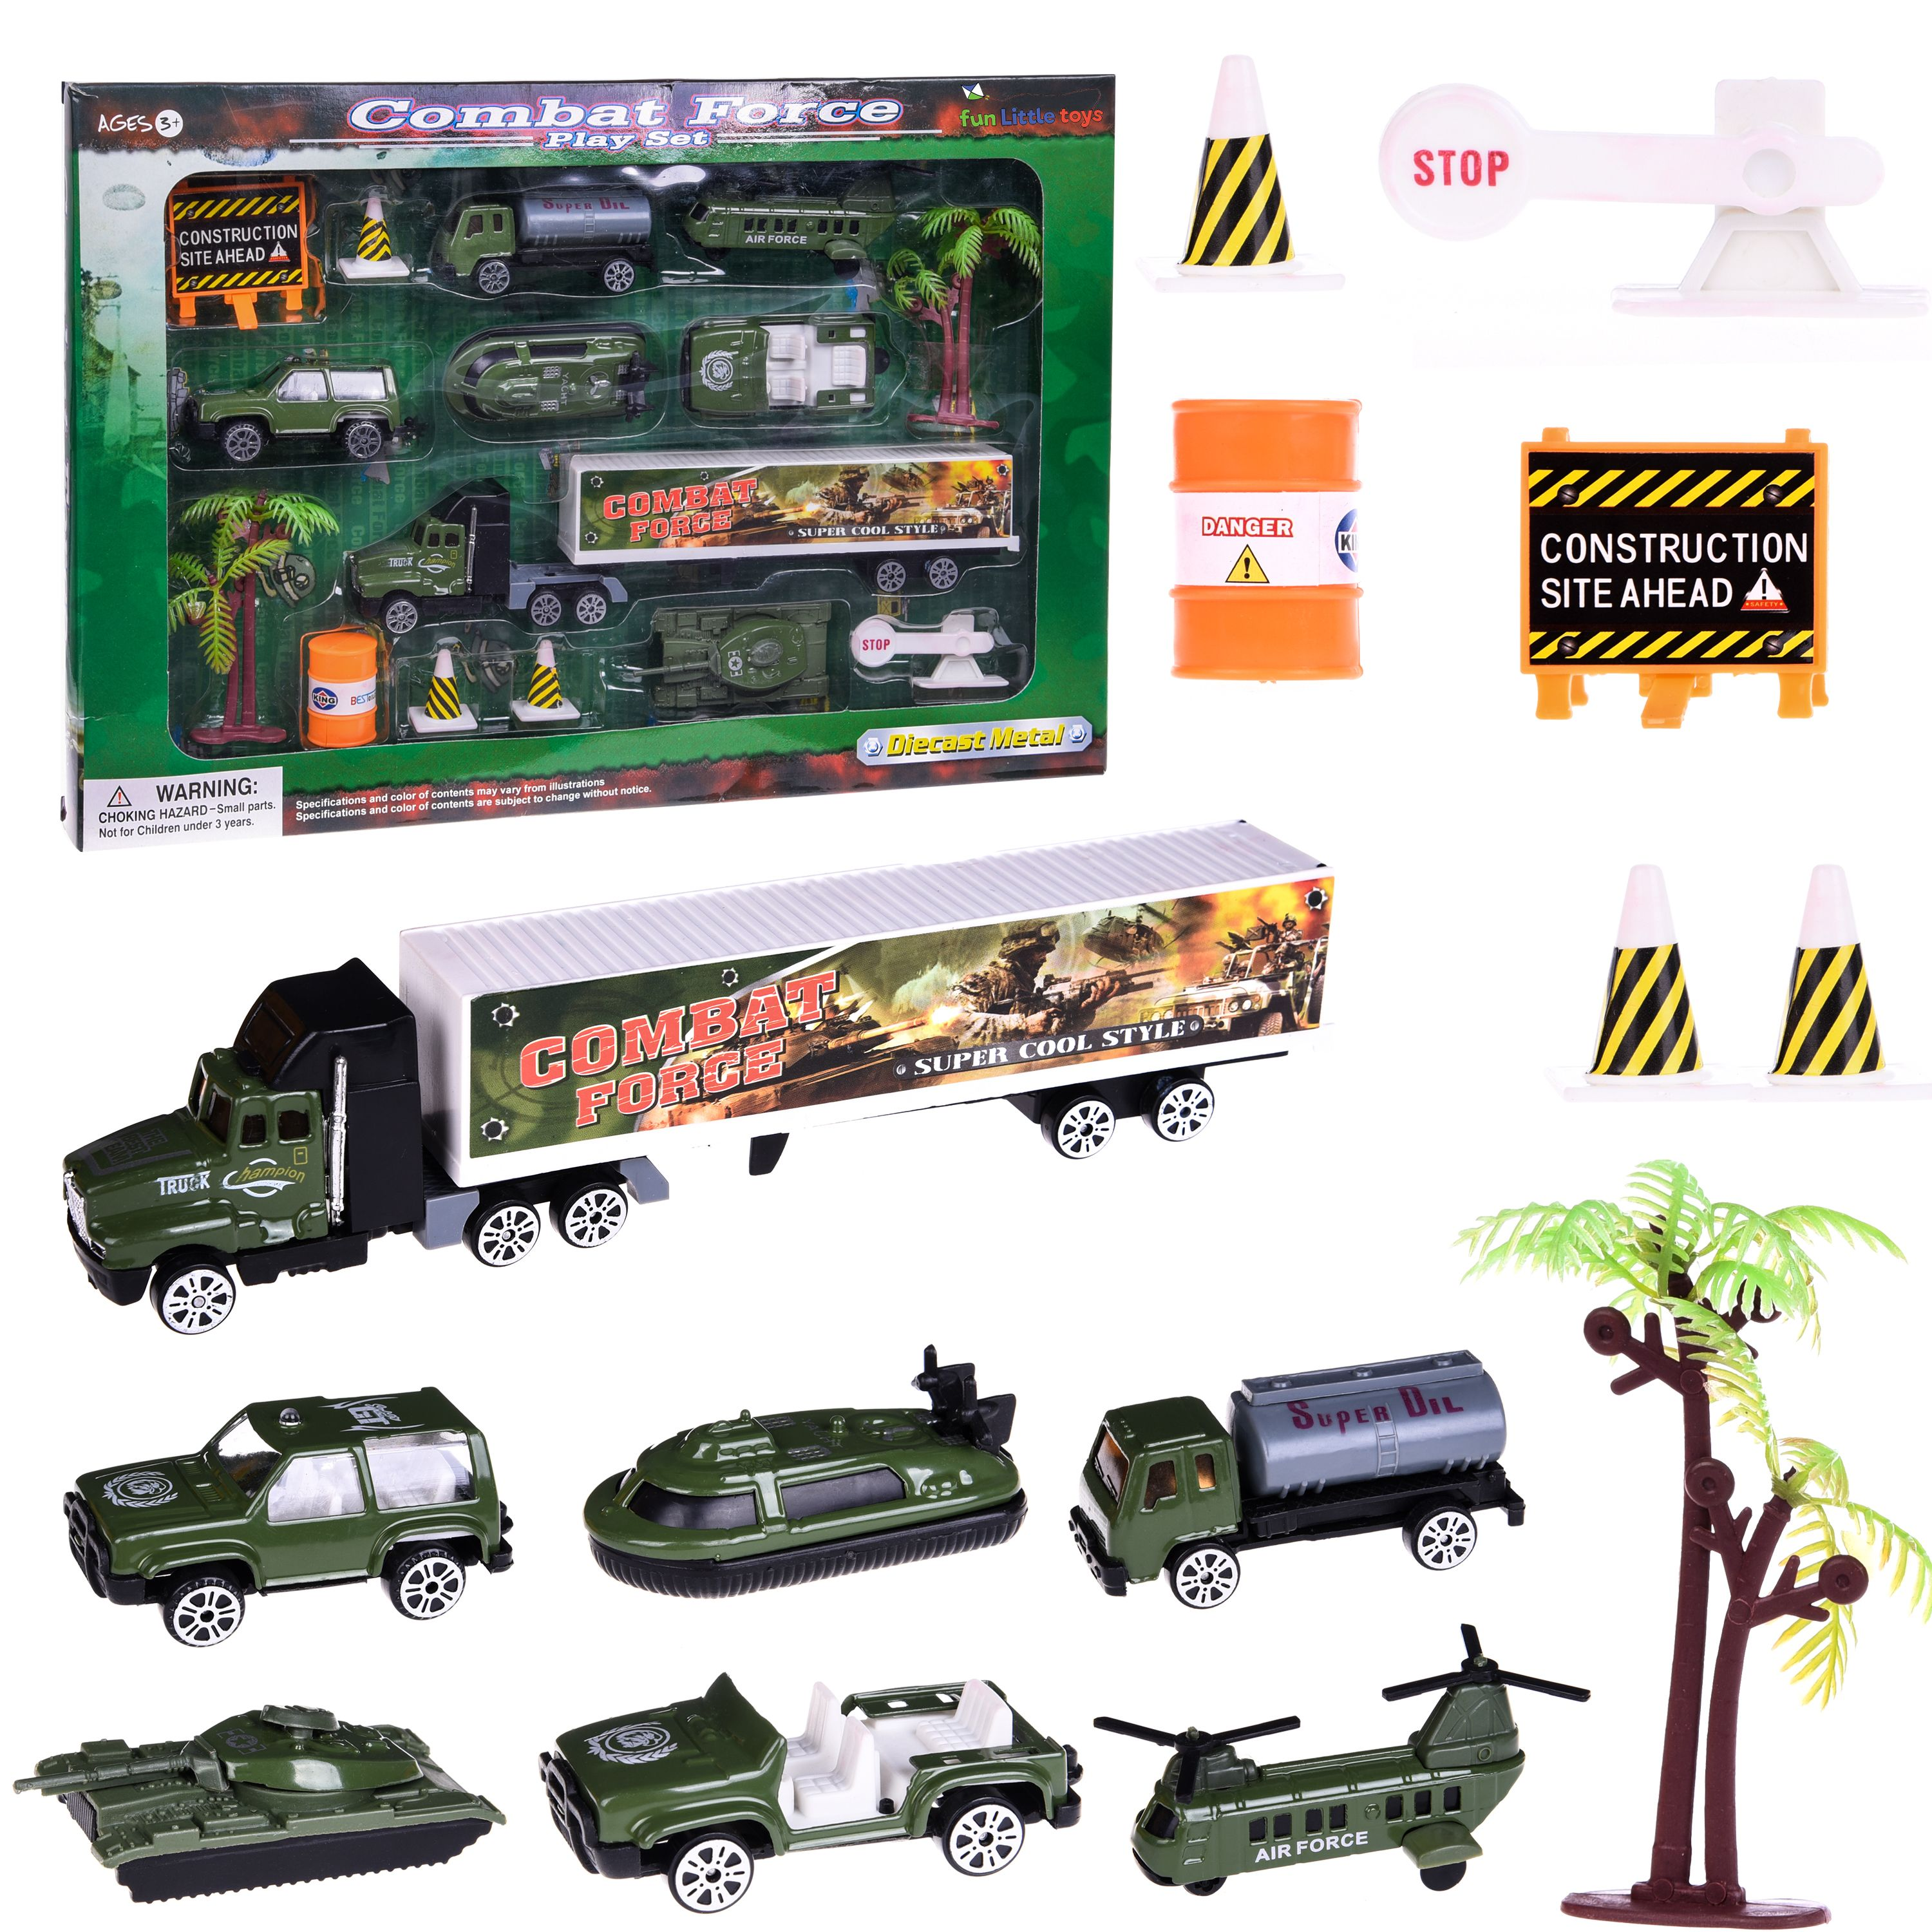 Boy's Army Man Military Soldiers Truck Hero Role Play Action Diecast Vehicle Play Set for Party Favors with Tank, Truck, SUV, Helicopter, jeep,Plane and Accessories - 14 pcs F-34